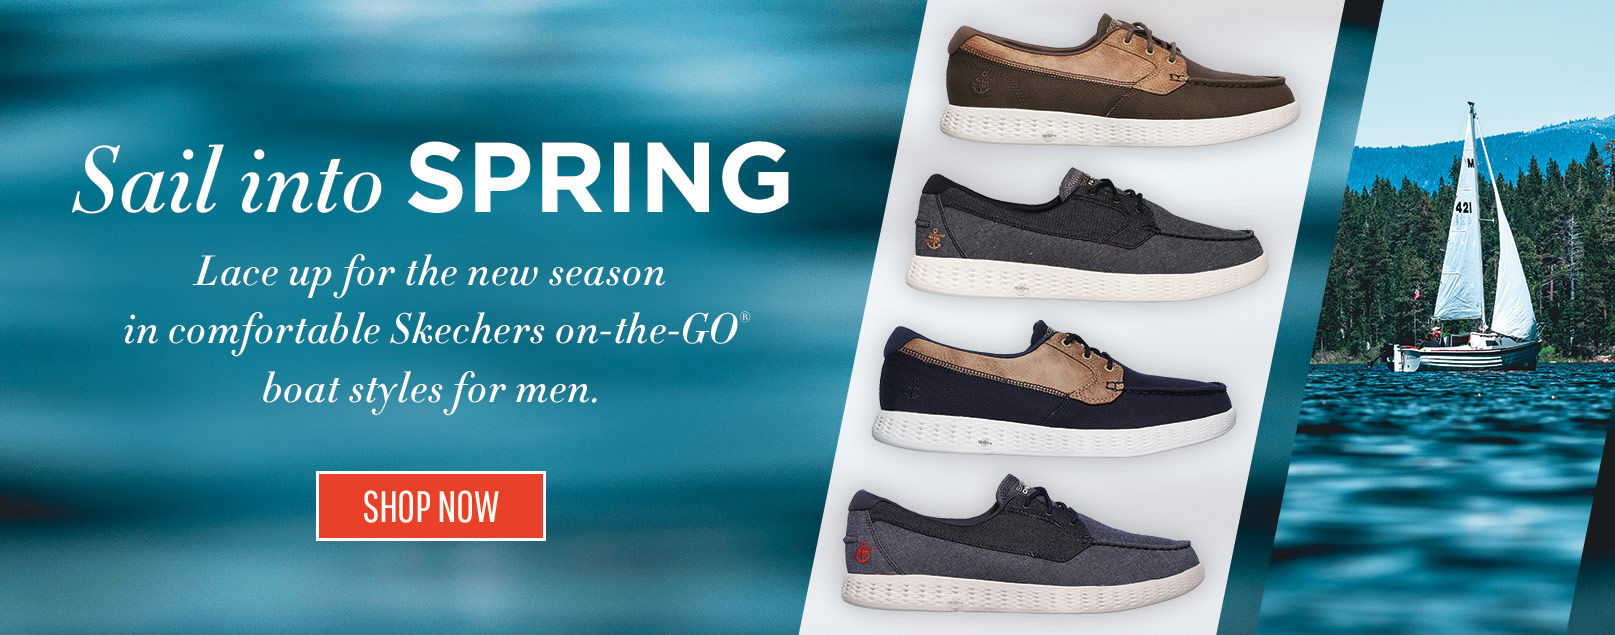 Sail into the season with comfortable Skechers On the GO Boat shoes for men